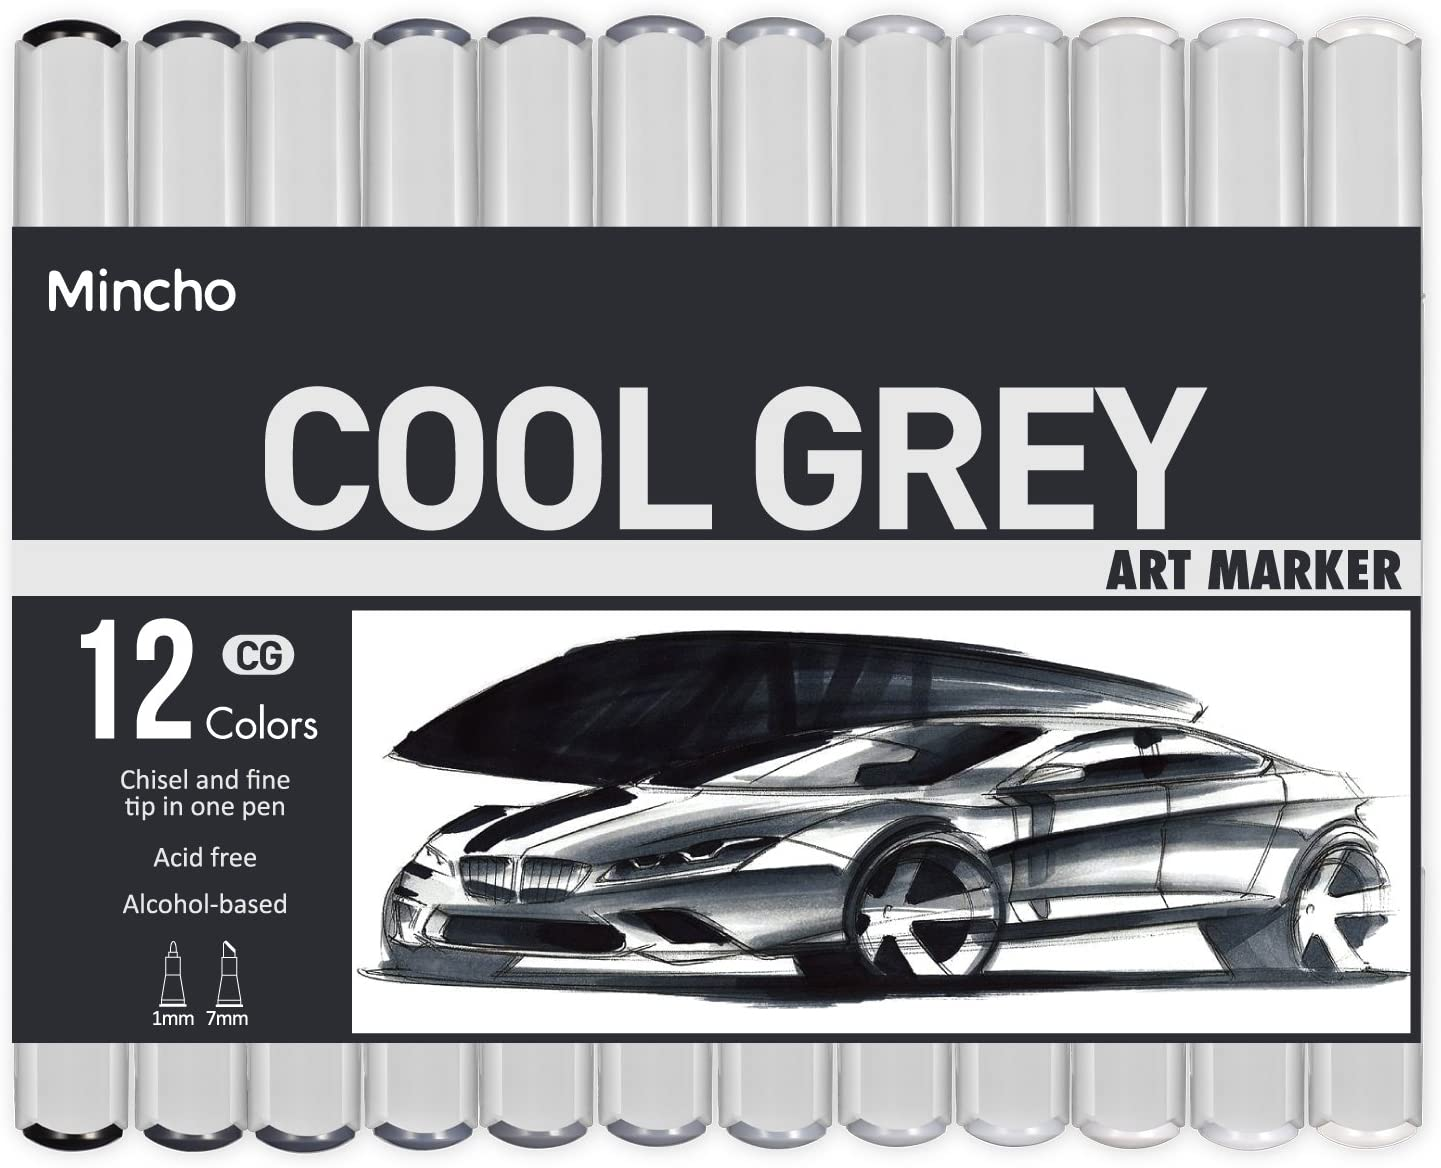 New COPIC Twin Marker 12 Cool Grey Set CG Graphic Art Markers Free Shipping